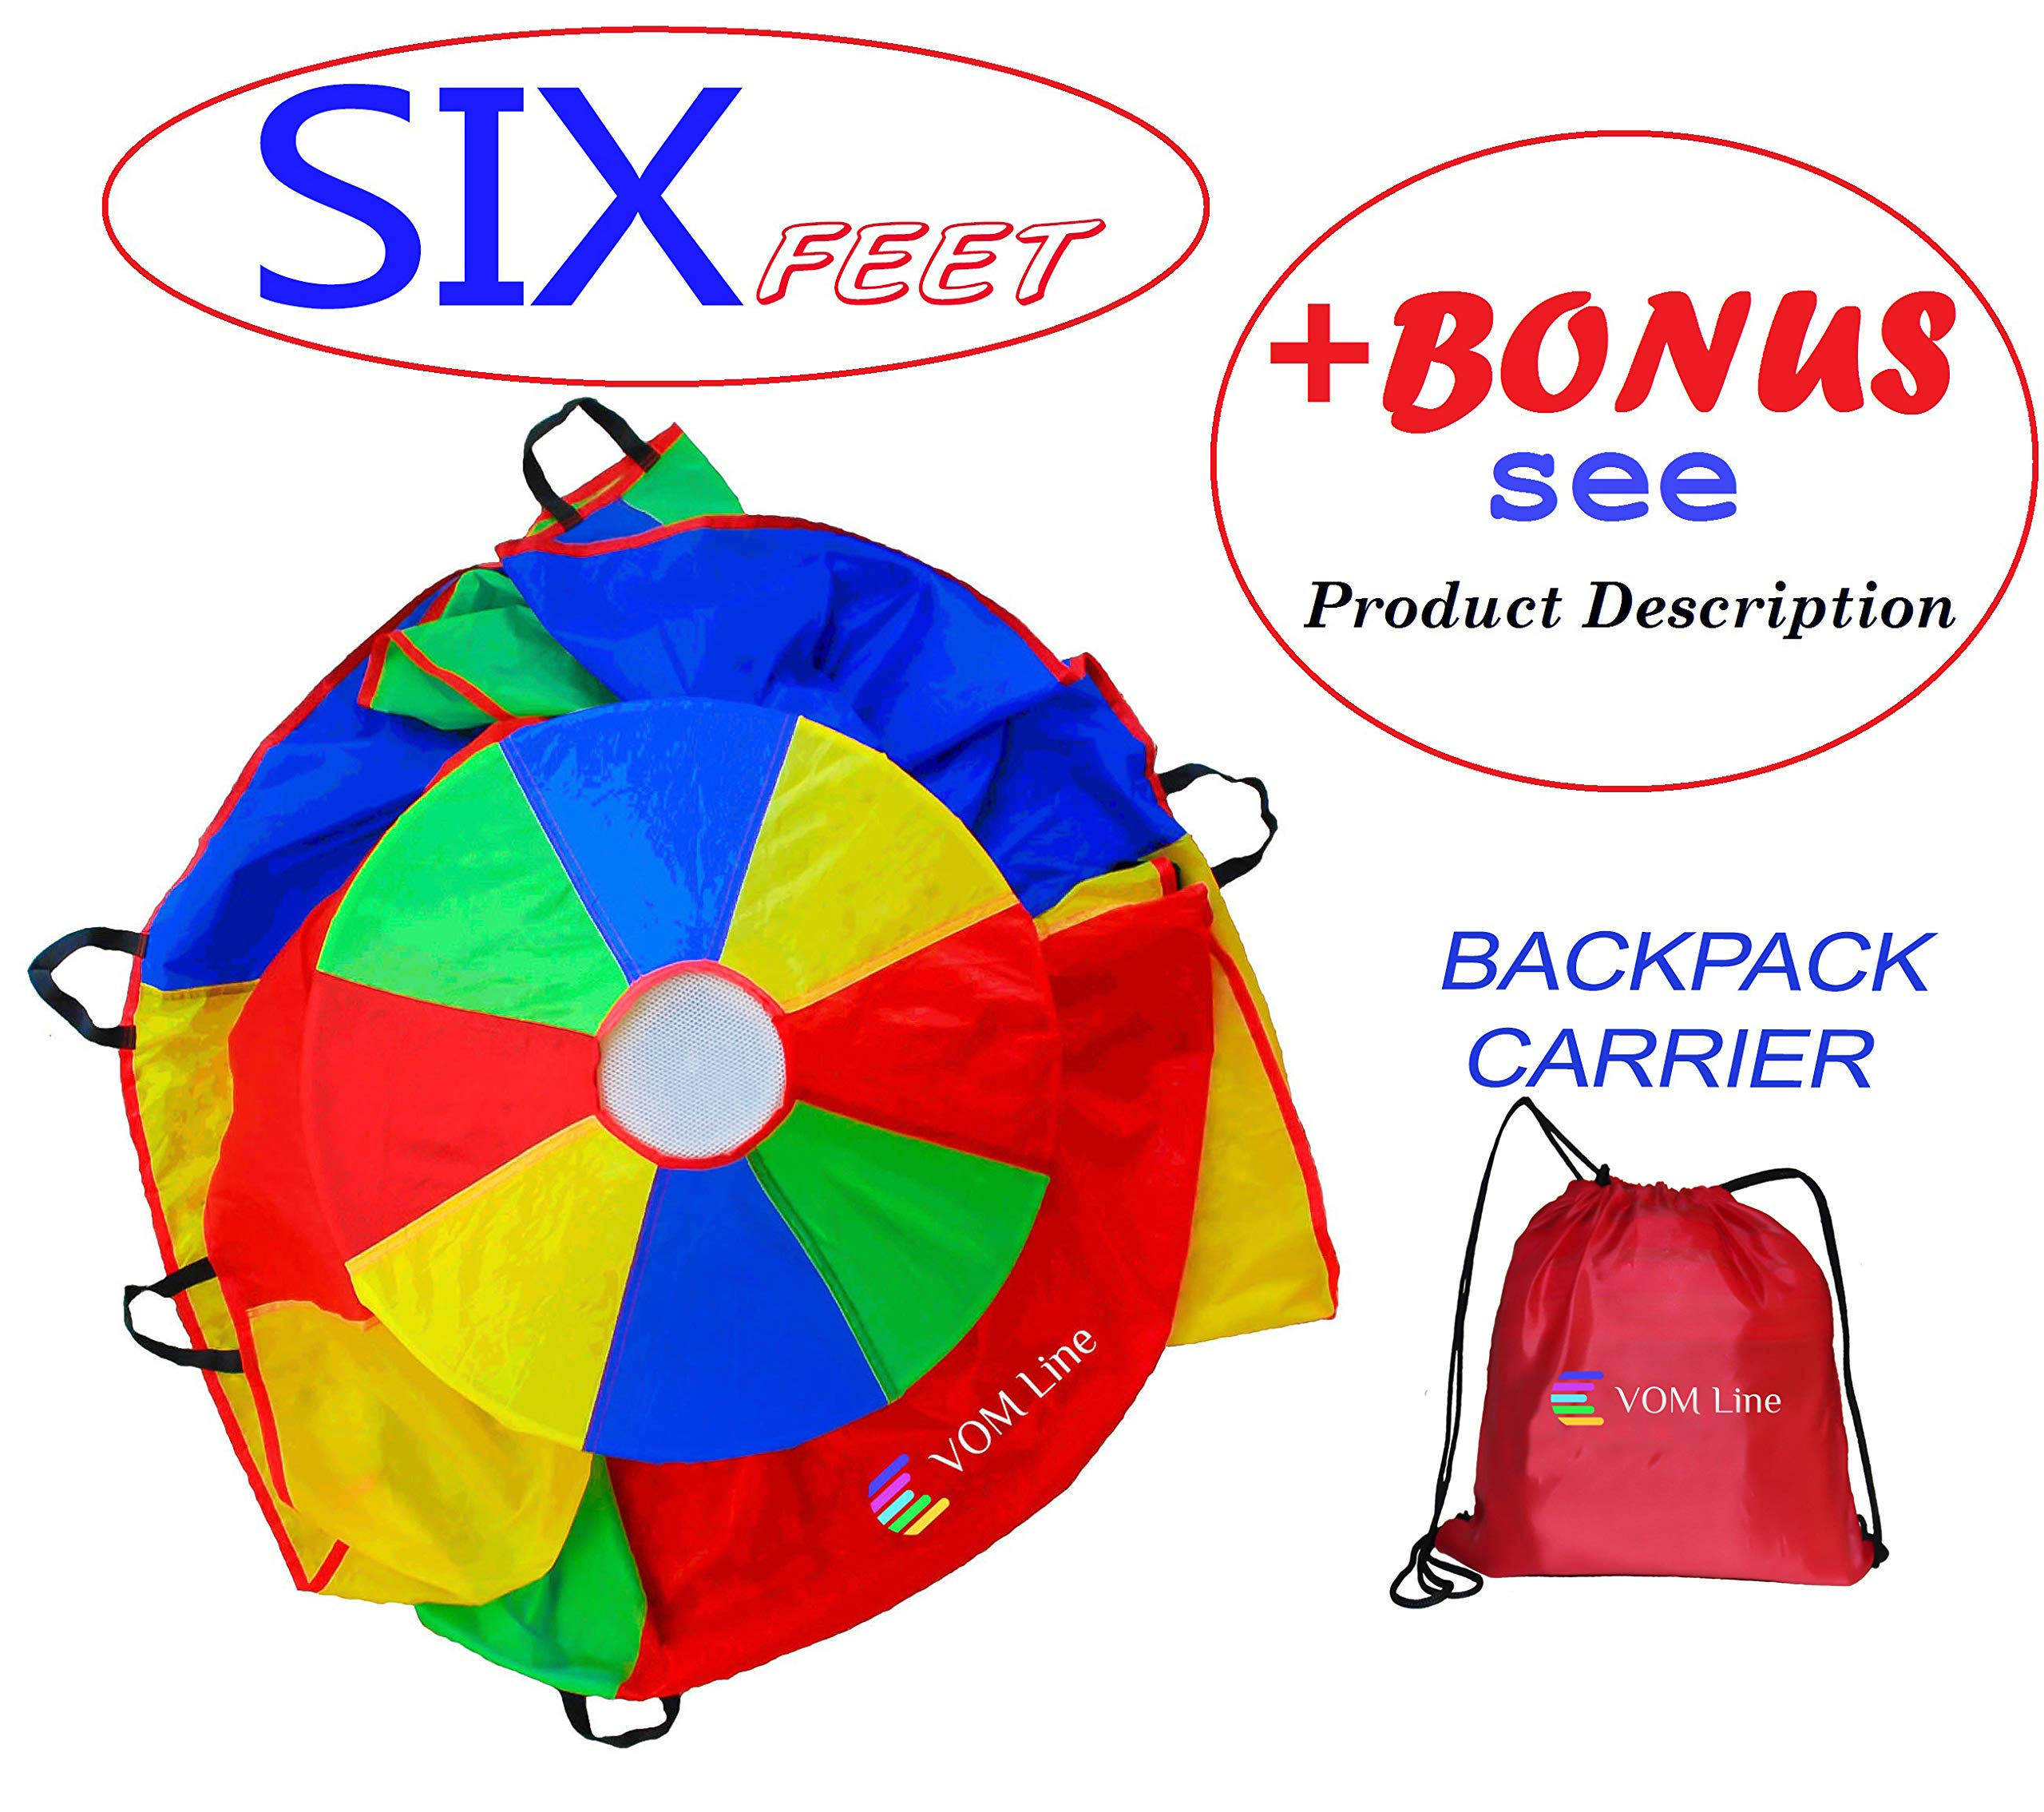 VOMLine Play Parachute 6 Foot for Kids with Extra Strong Smudge Resistant-Handles, Proper Selection of Matching Colors On The Basis of Experimental Color Testing, with High-Grade Stitching